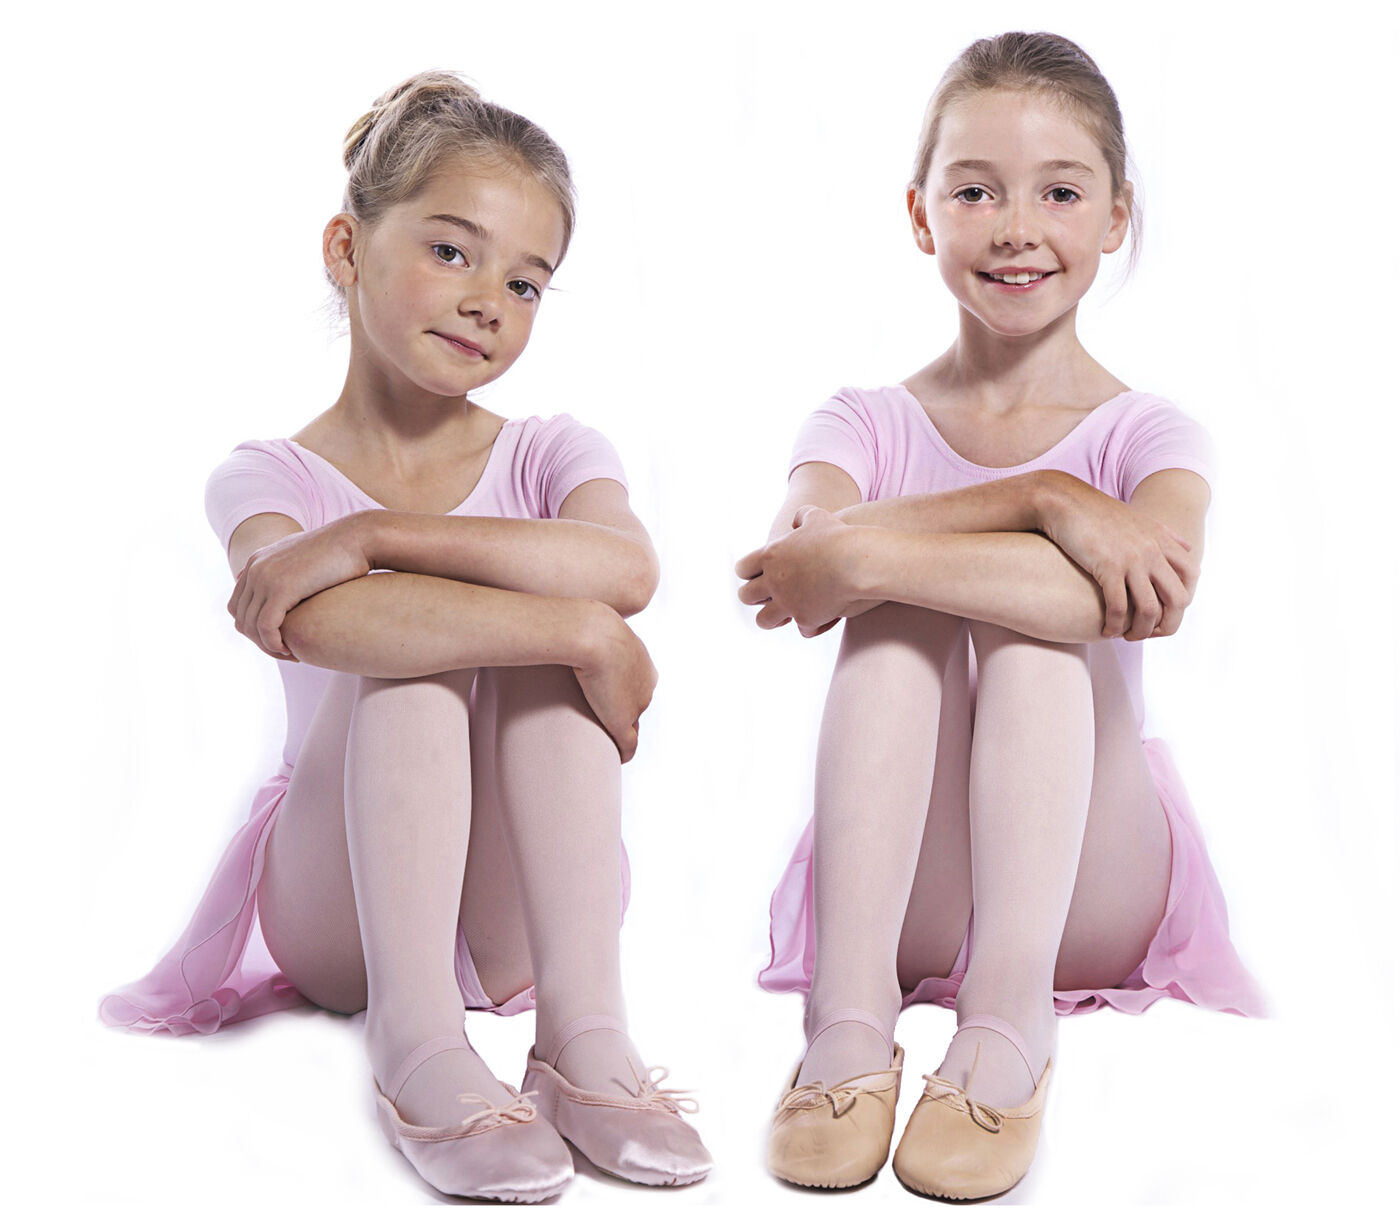 Girls Toddler/Infant BALLET SHOES Pink LEATHER Soft Pumps. All Children's sizes!